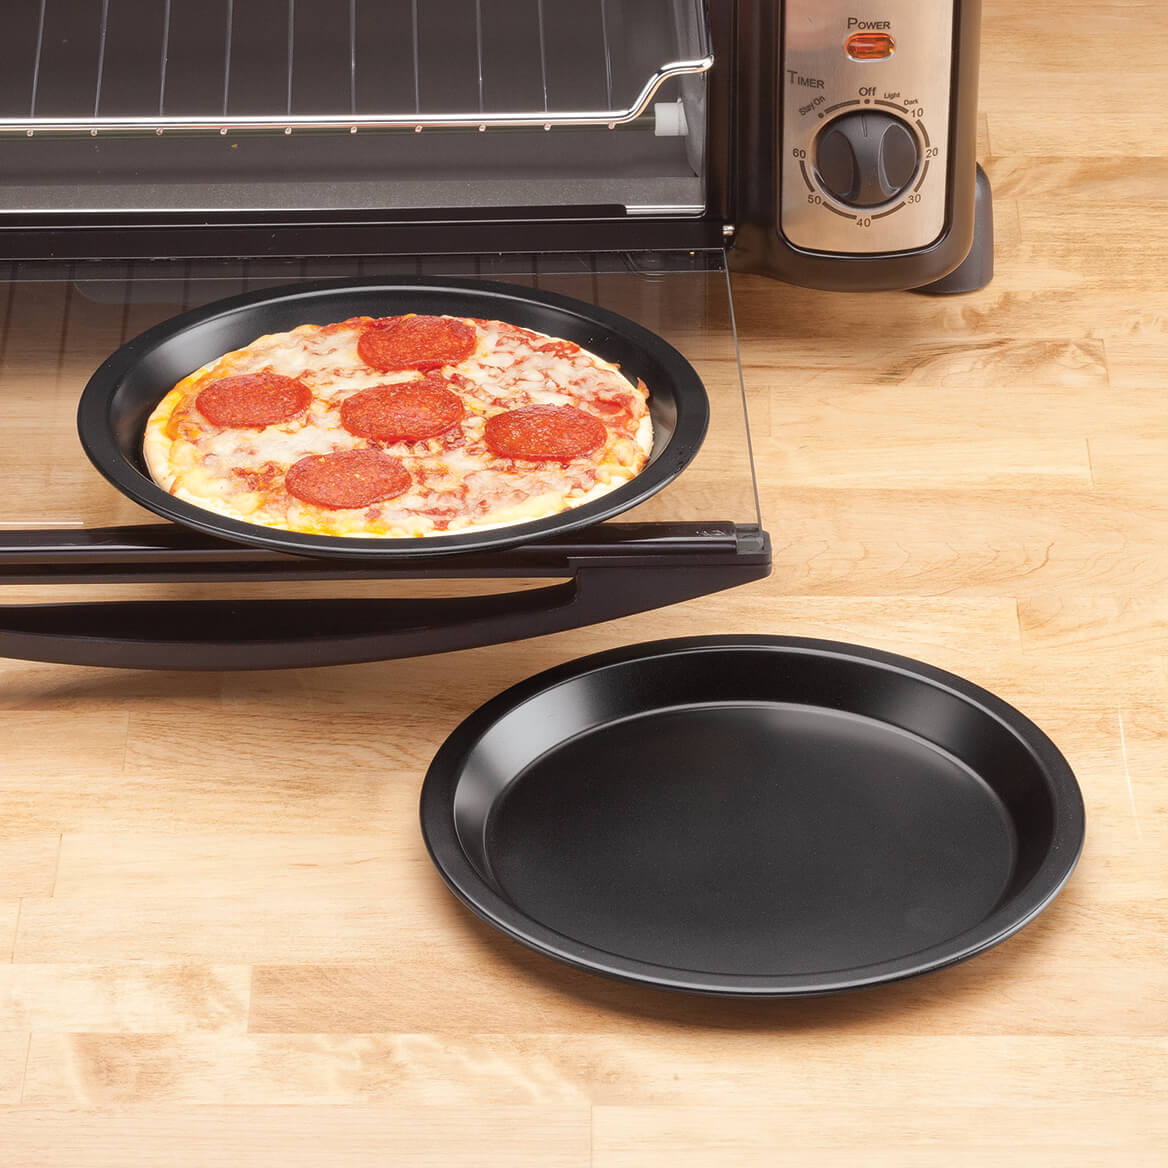 Toaster Oven Pizza Pans by Home-Style Kitchen ™ - Set of 2-354482